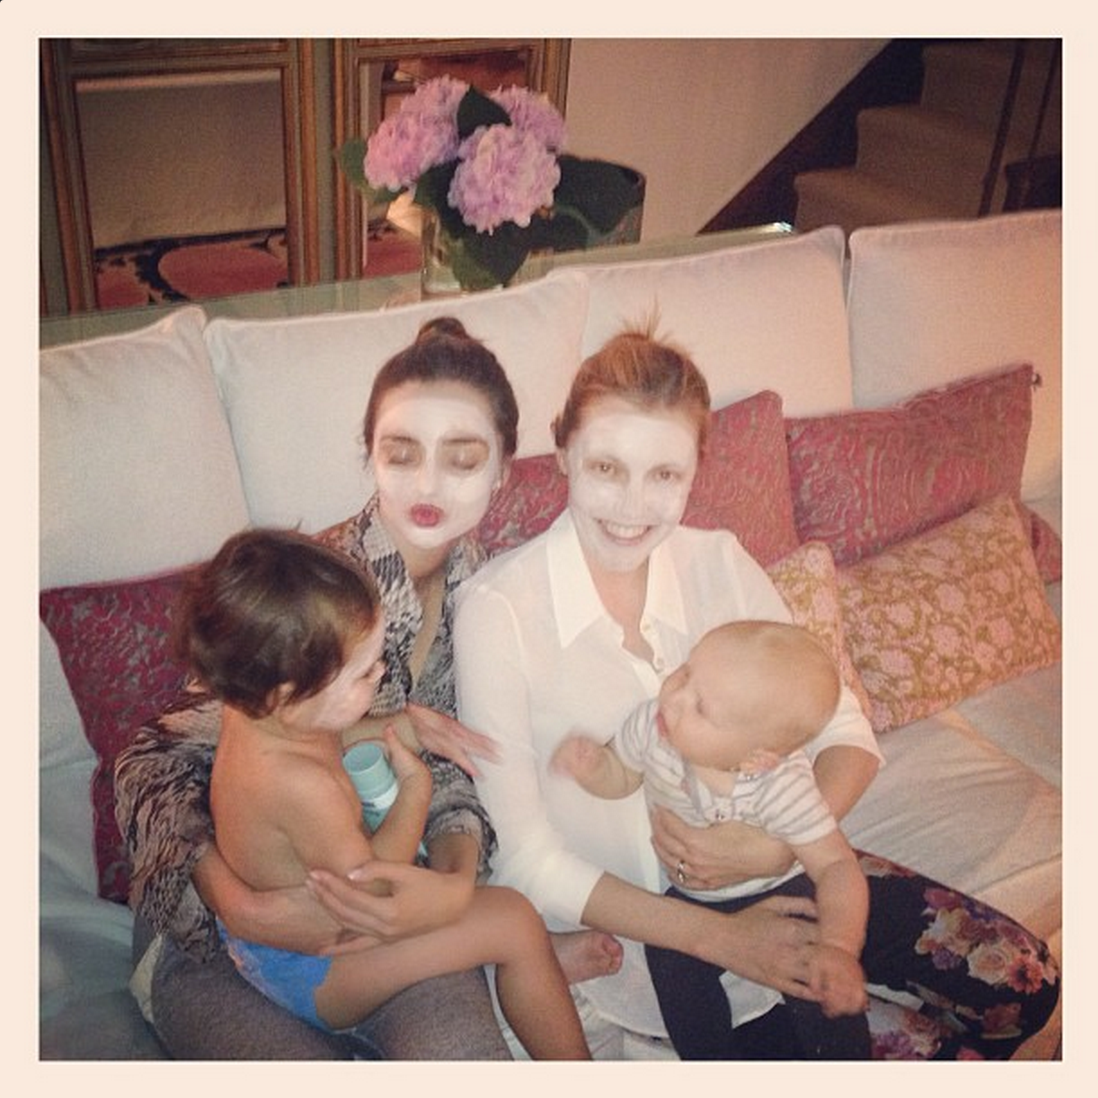 "Mummy mask time with <a href=""https://instagram.com/tammymdickson/"">@tammymdickson</a> ❤  —<a target=""_blank"" href=""https://instagram.com/p/eOWDYeEMFC/?taken-by=mirandakerr"">@mirandakerr</a>"